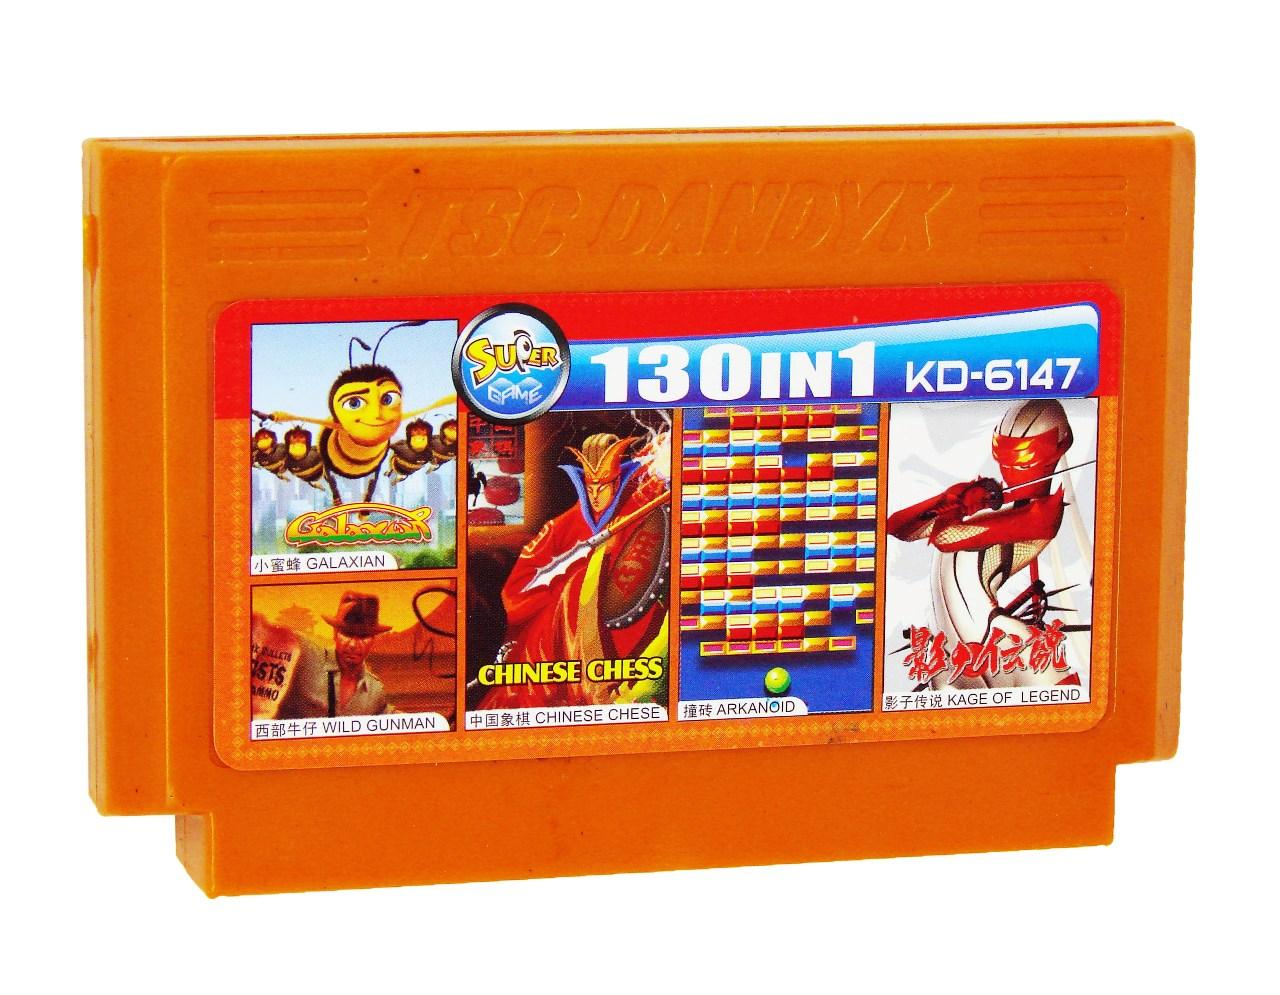 Картридж для Денди KD 6147 130 in 1 (Dendy), Galaxian, Wild Gunman, Chinese Chess, Arkanoid, Legend of Kage